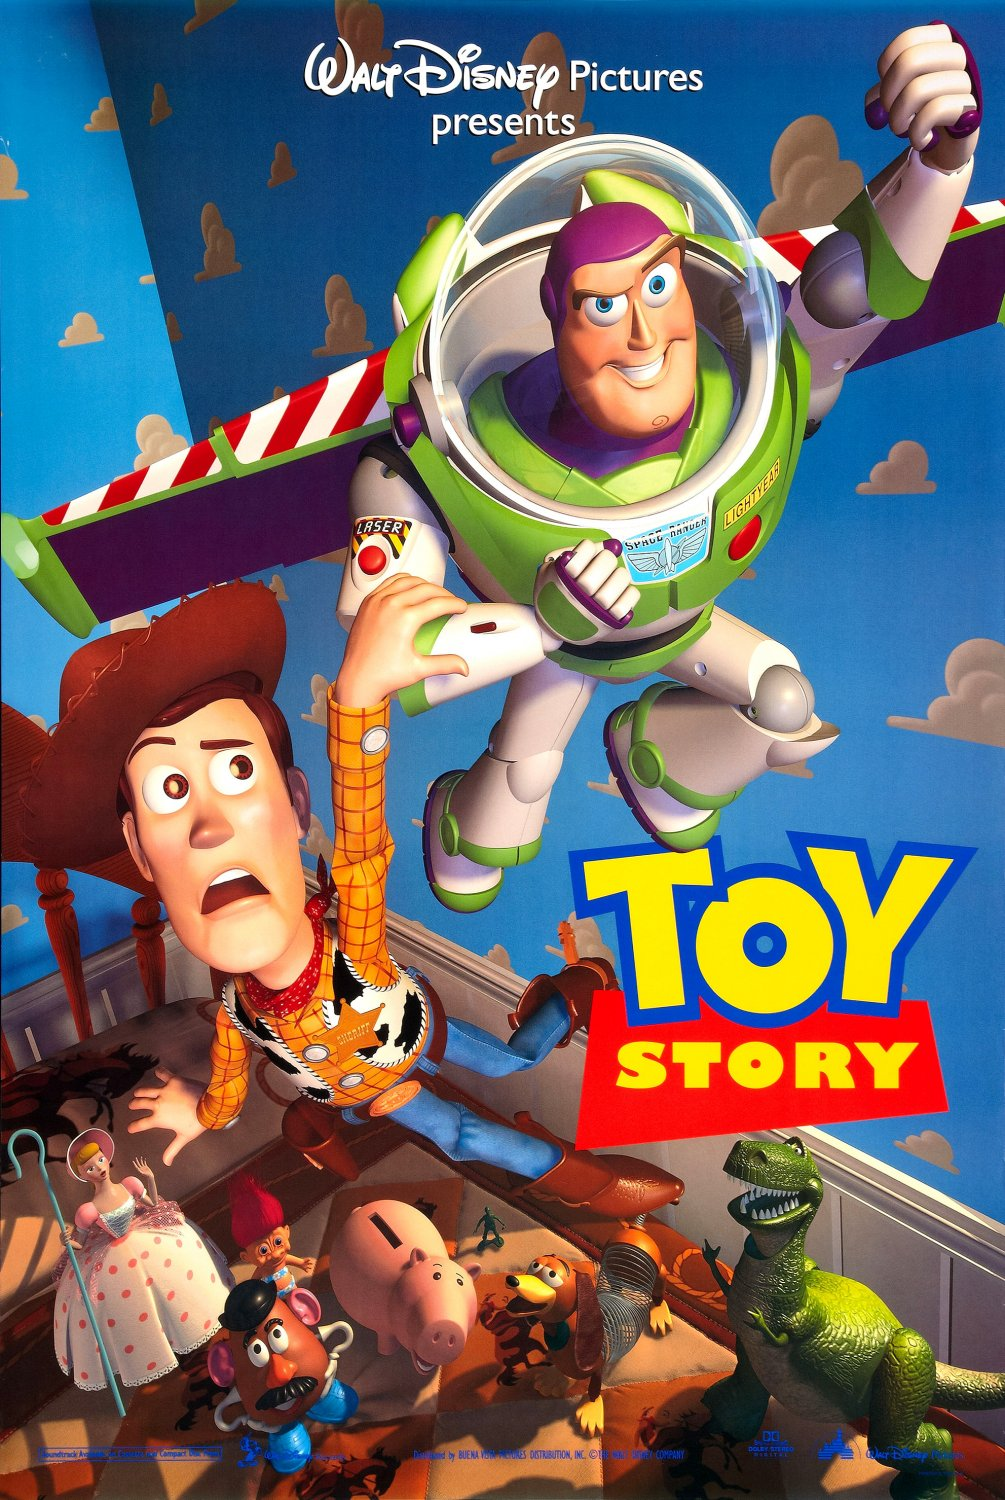 http://vignette4.wikia.nocookie.net/pixar/images/c/ca/Toy_story_ver1_xlg.jpg/revision/latest?cb=20110515142143